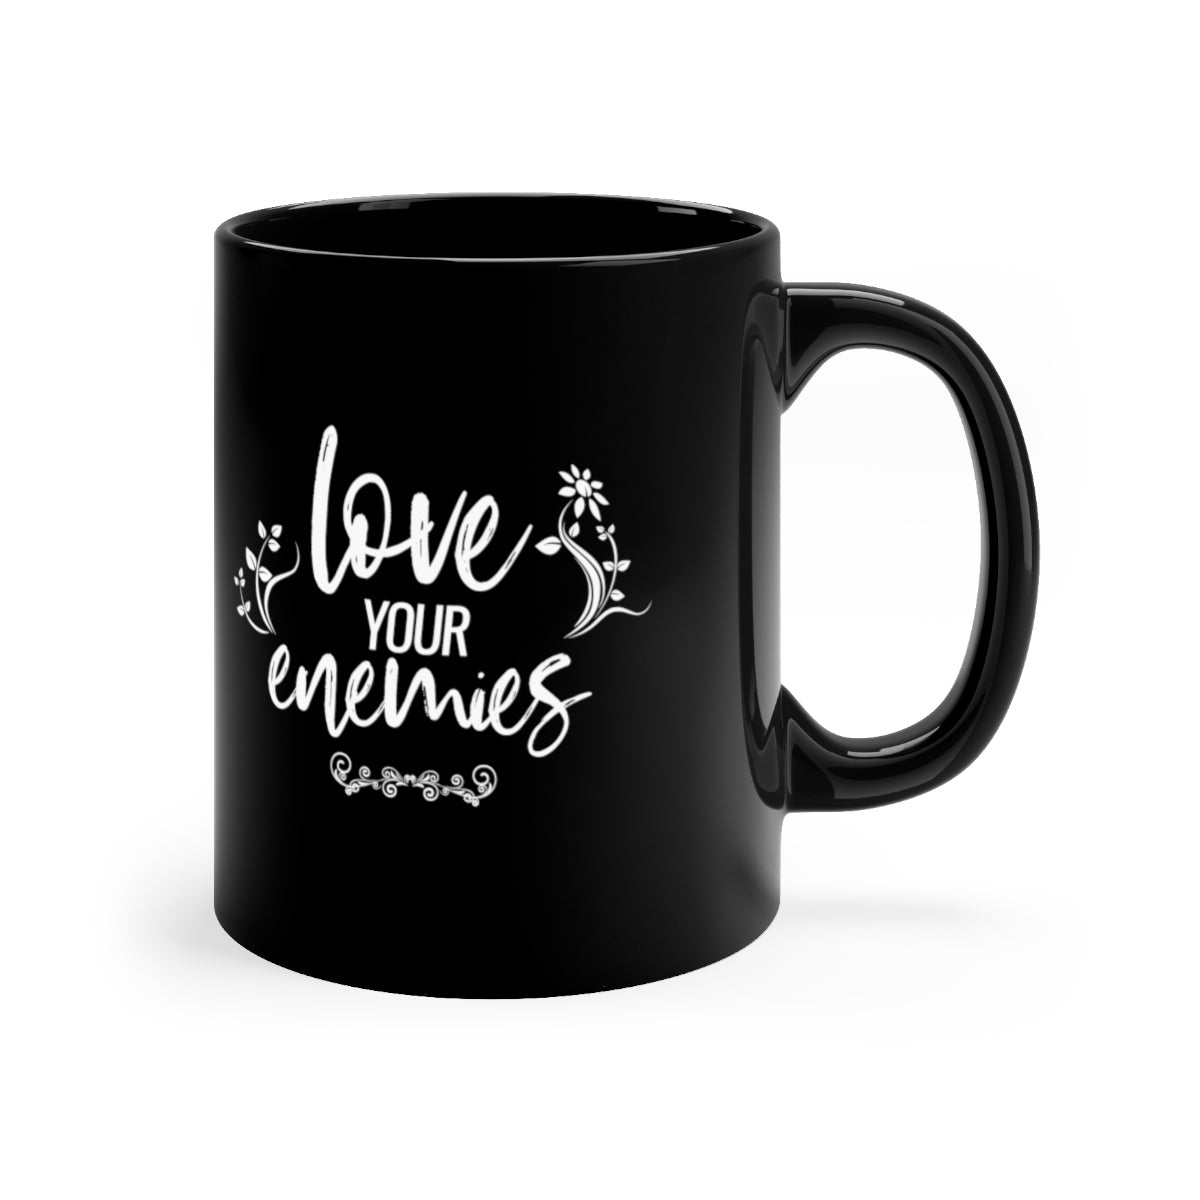 Love Your Enemies Black mug 11oz